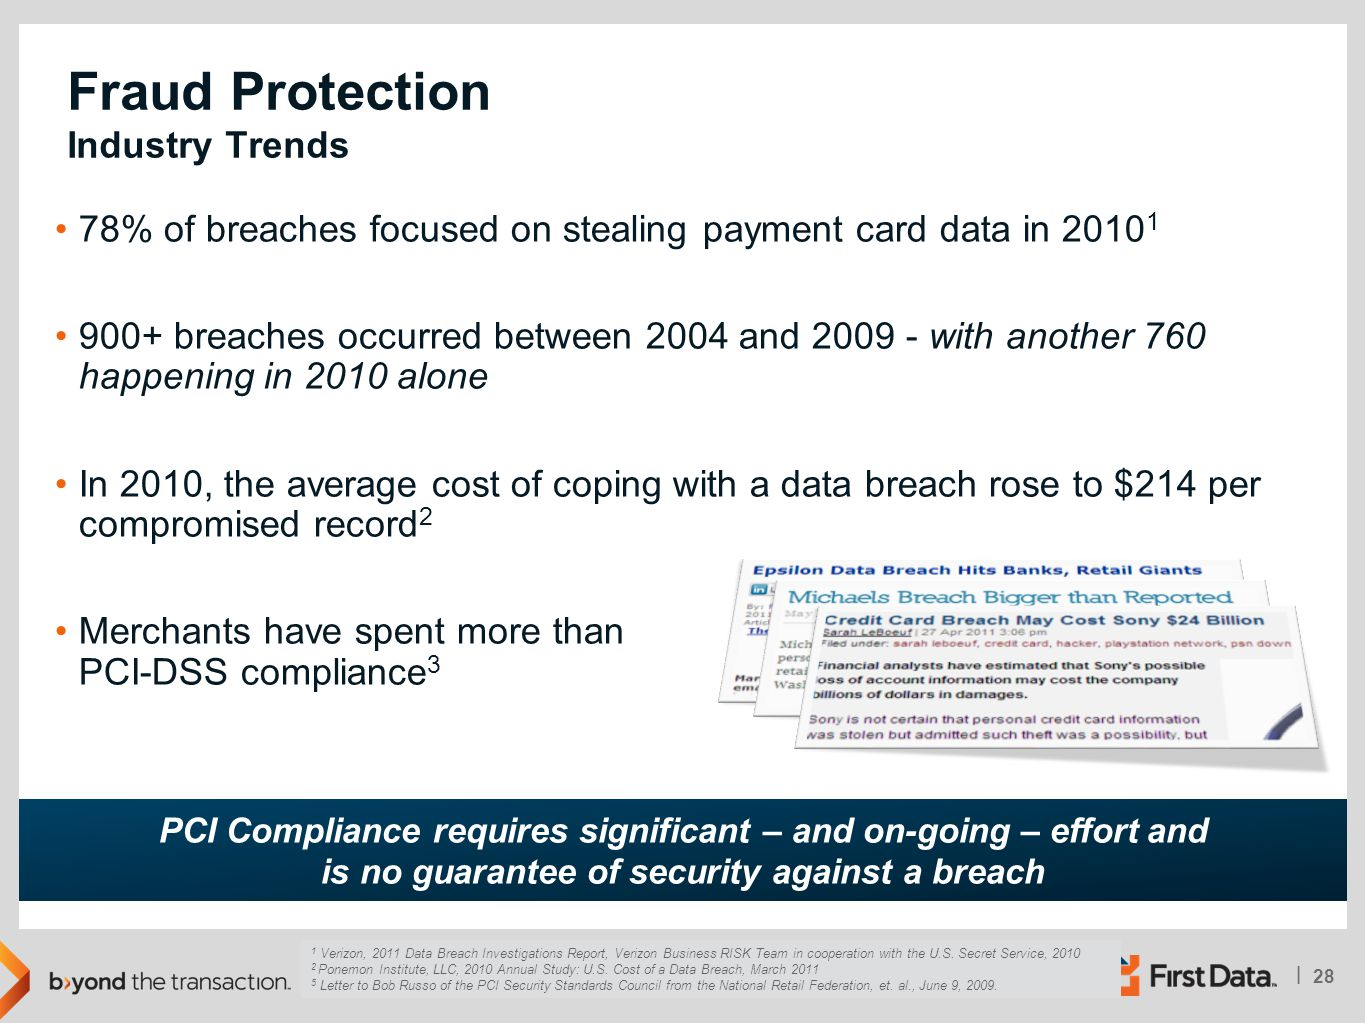 Fraud Protection Industry Trends